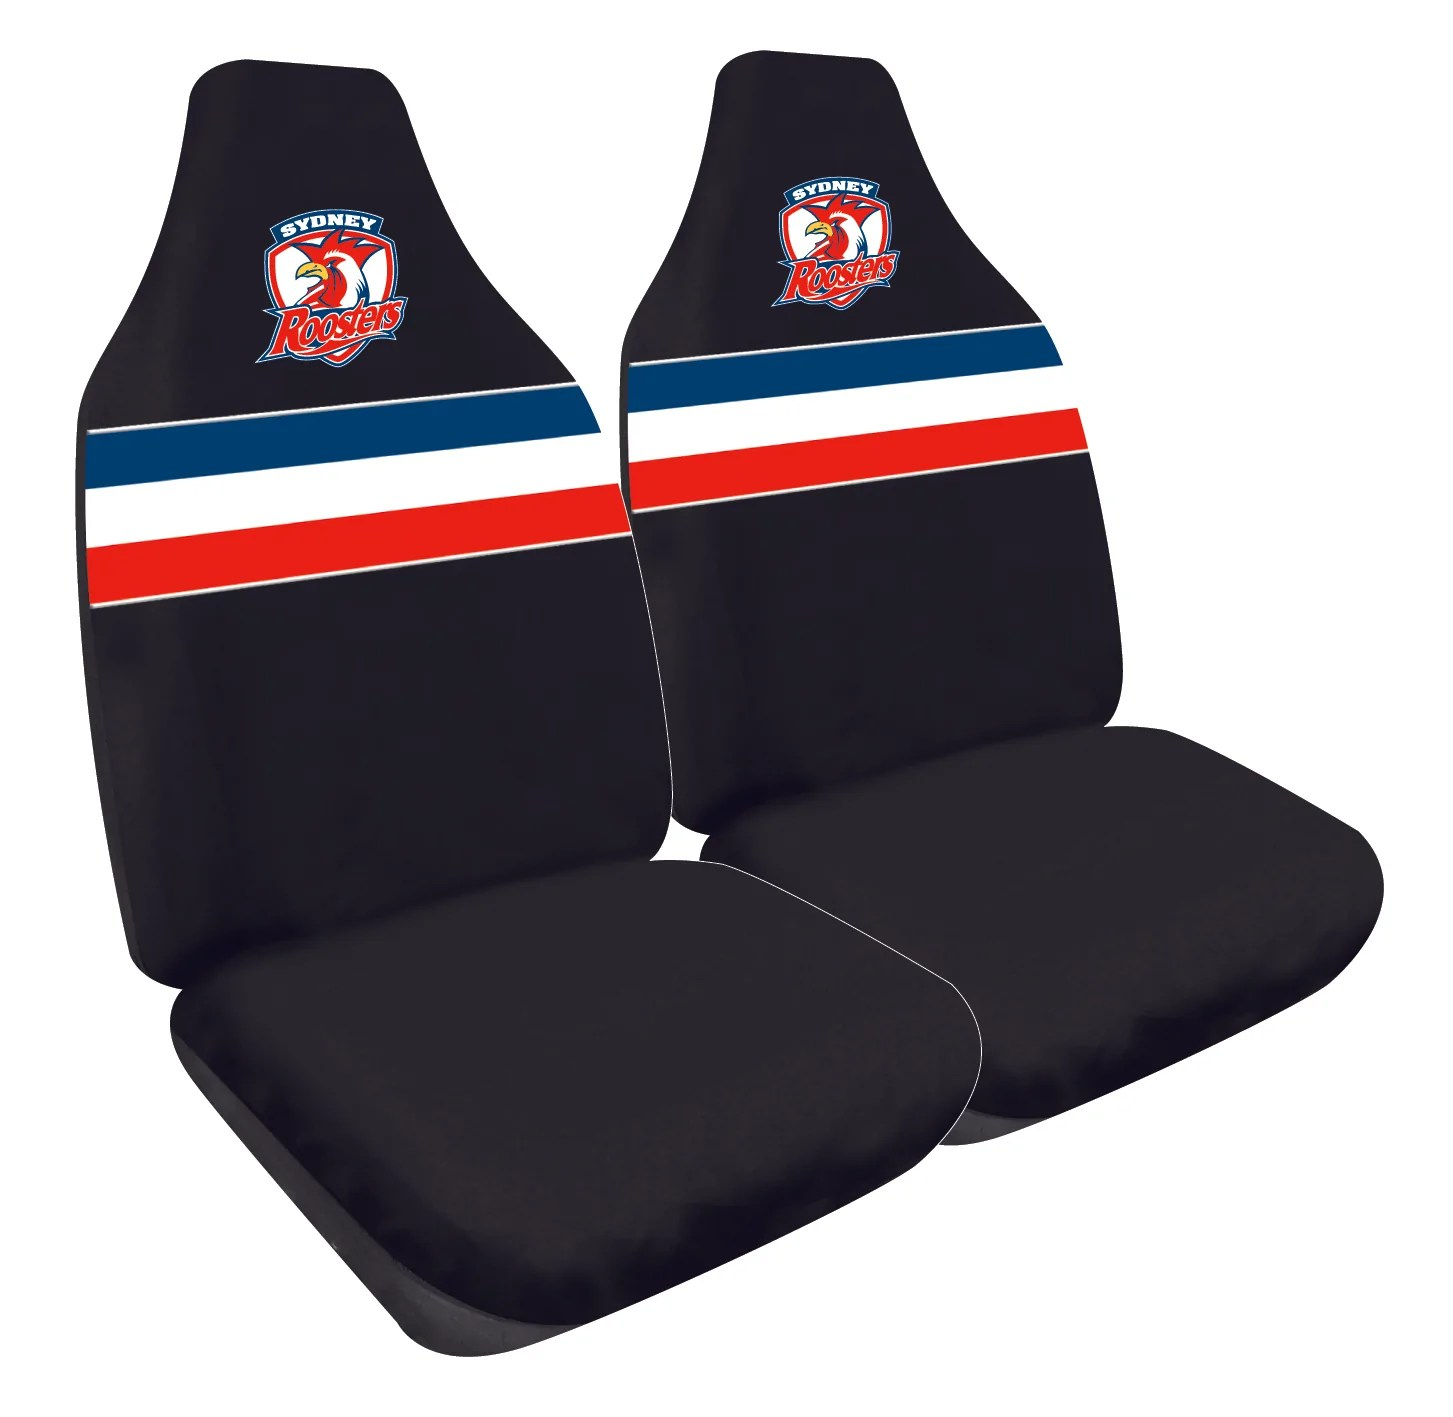 Seat Covers Sydney Sydney Roosters Car Seat Covers